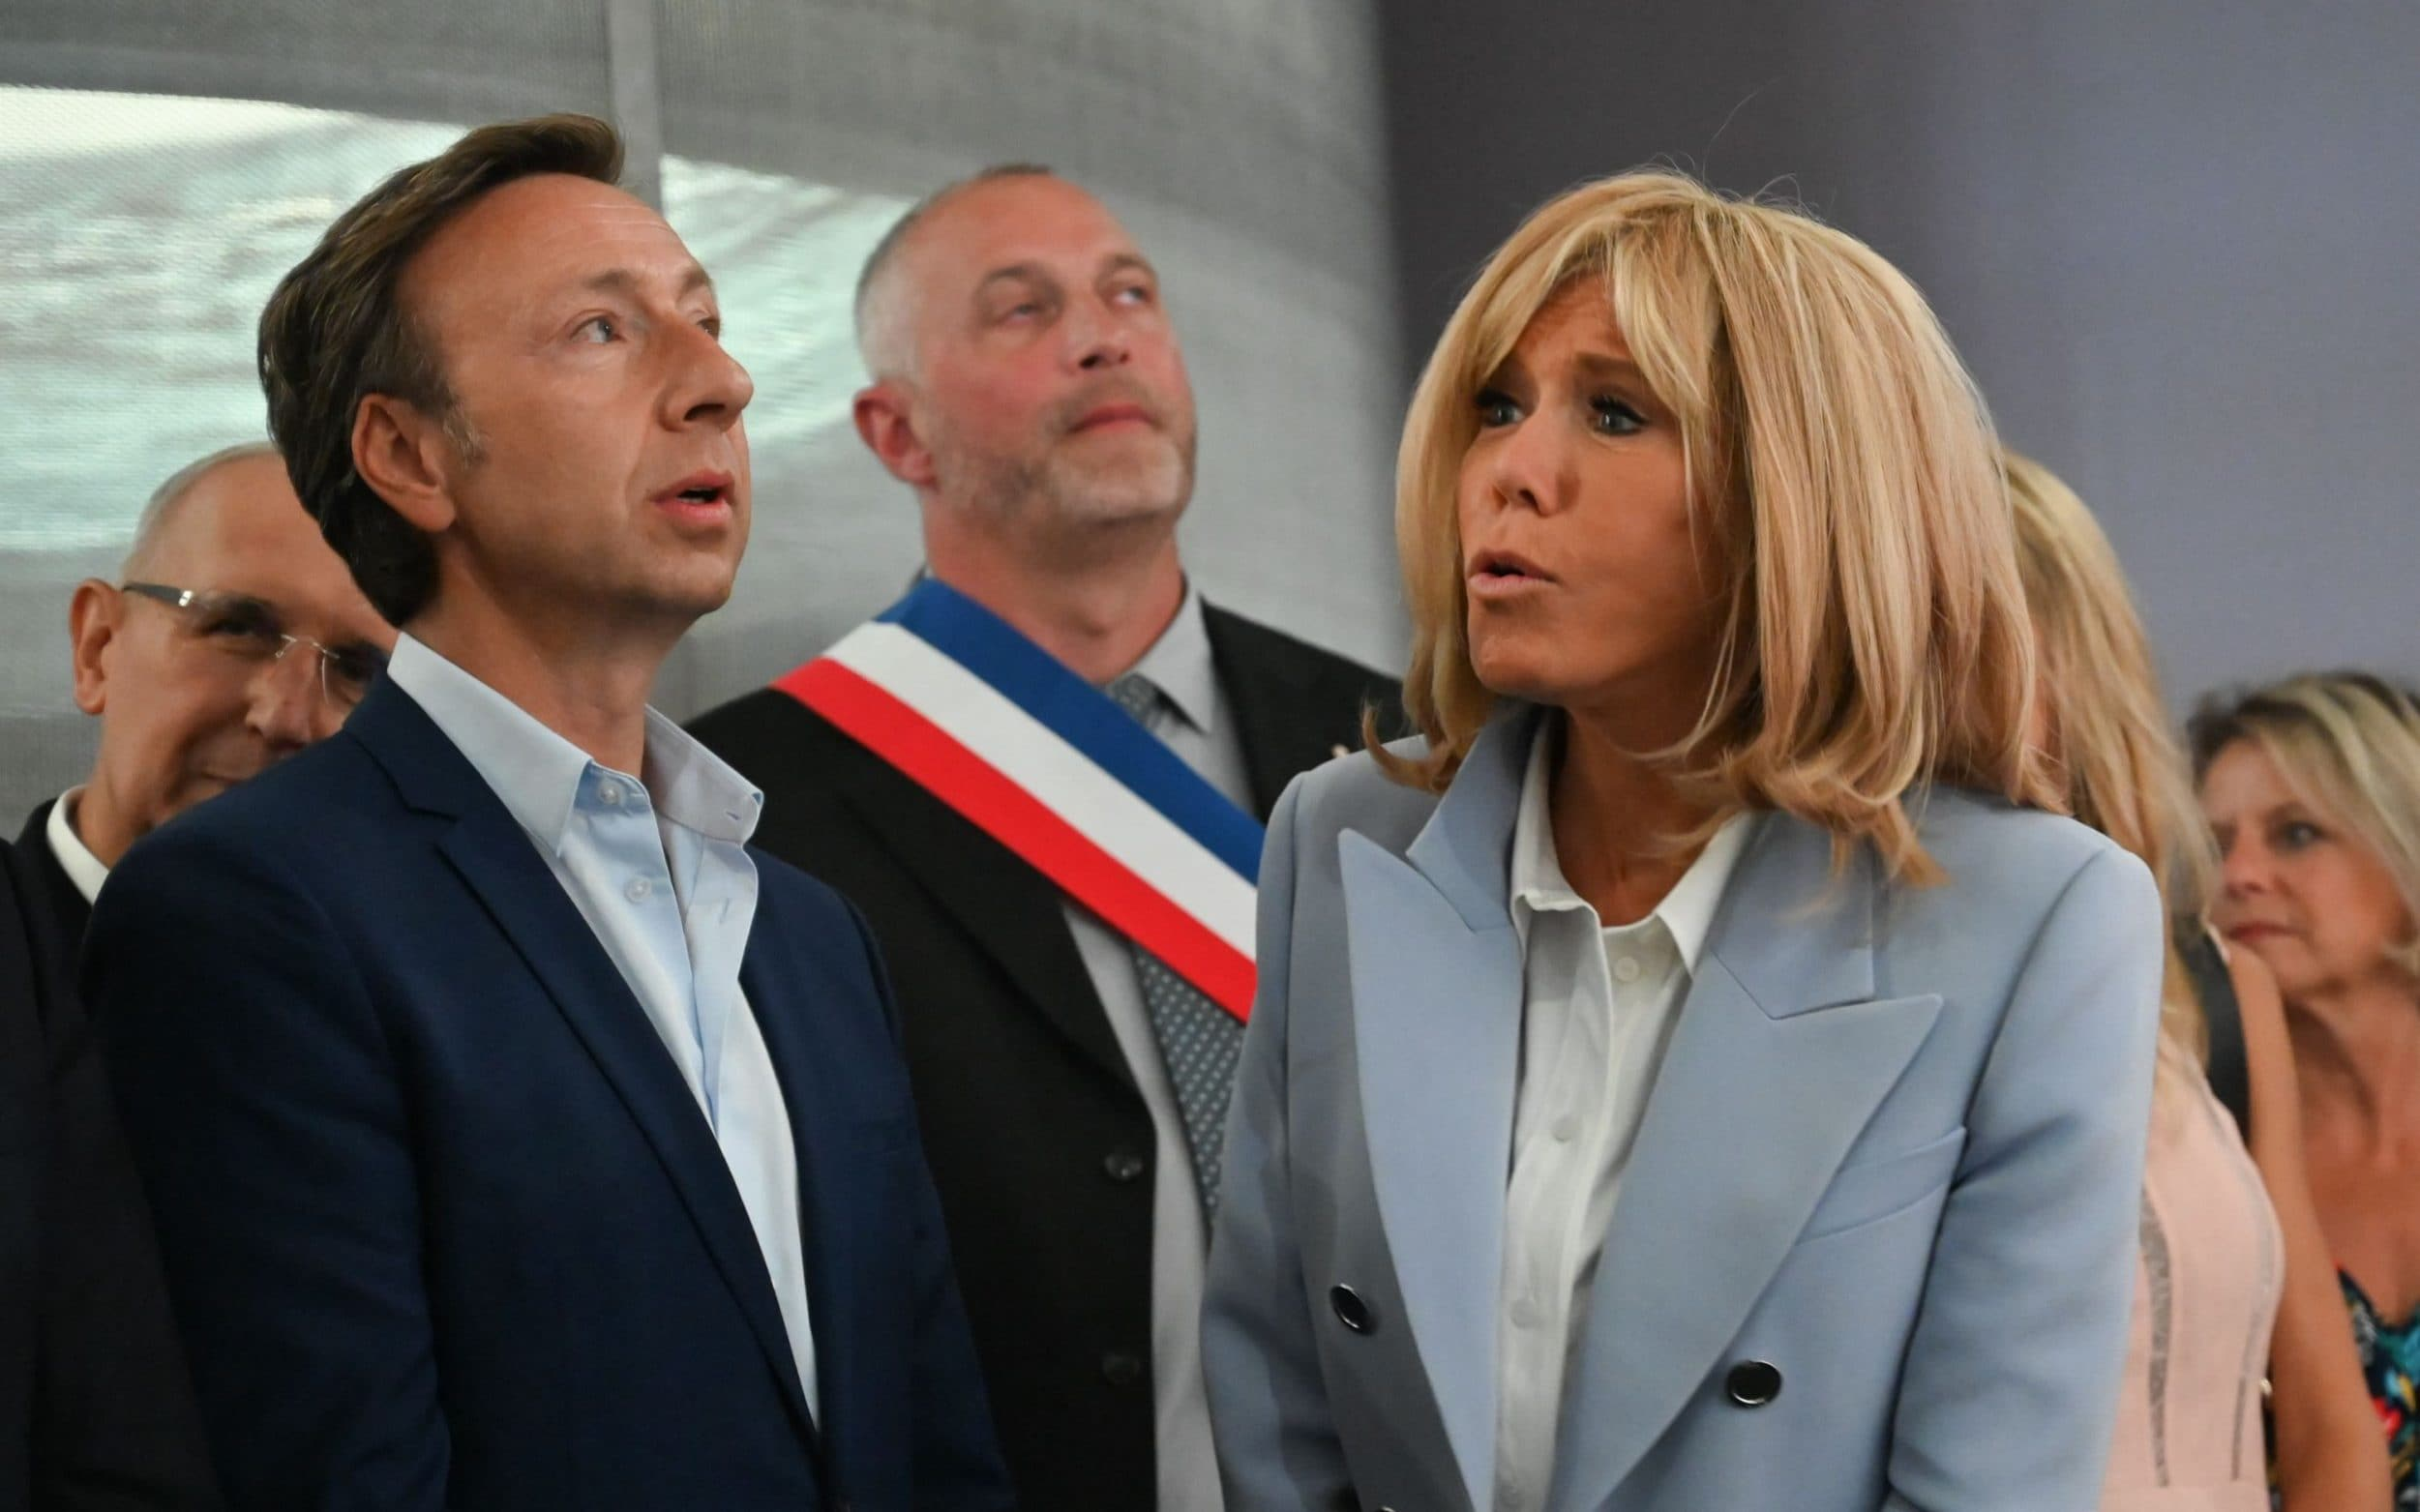 Brigitte Macron speaks out against sexism amid G7 Amazon fire funding row with Brazilian president